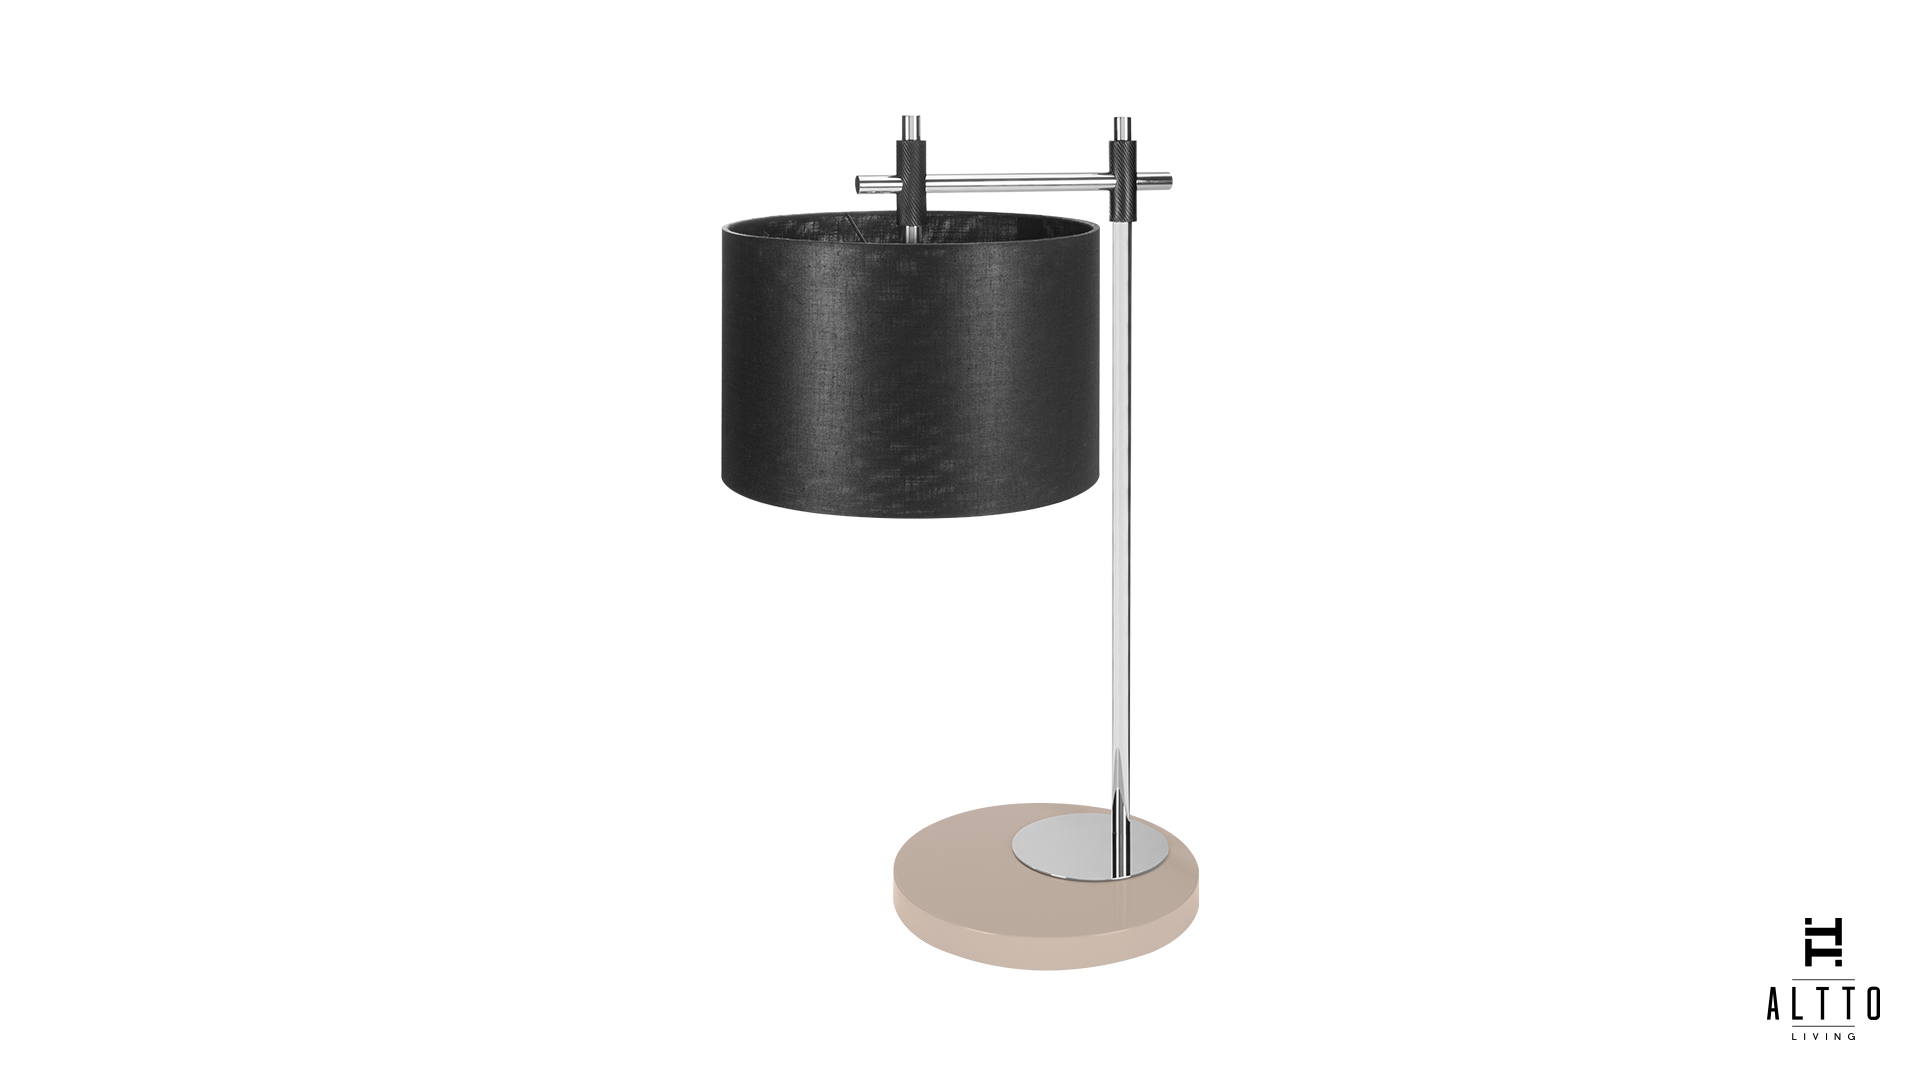 Altto static table lamp modern and cosmopolitan lighting range altto static table lamp modern and cosmopolitan lighting range with high quality finishes aloadofball Choice Image